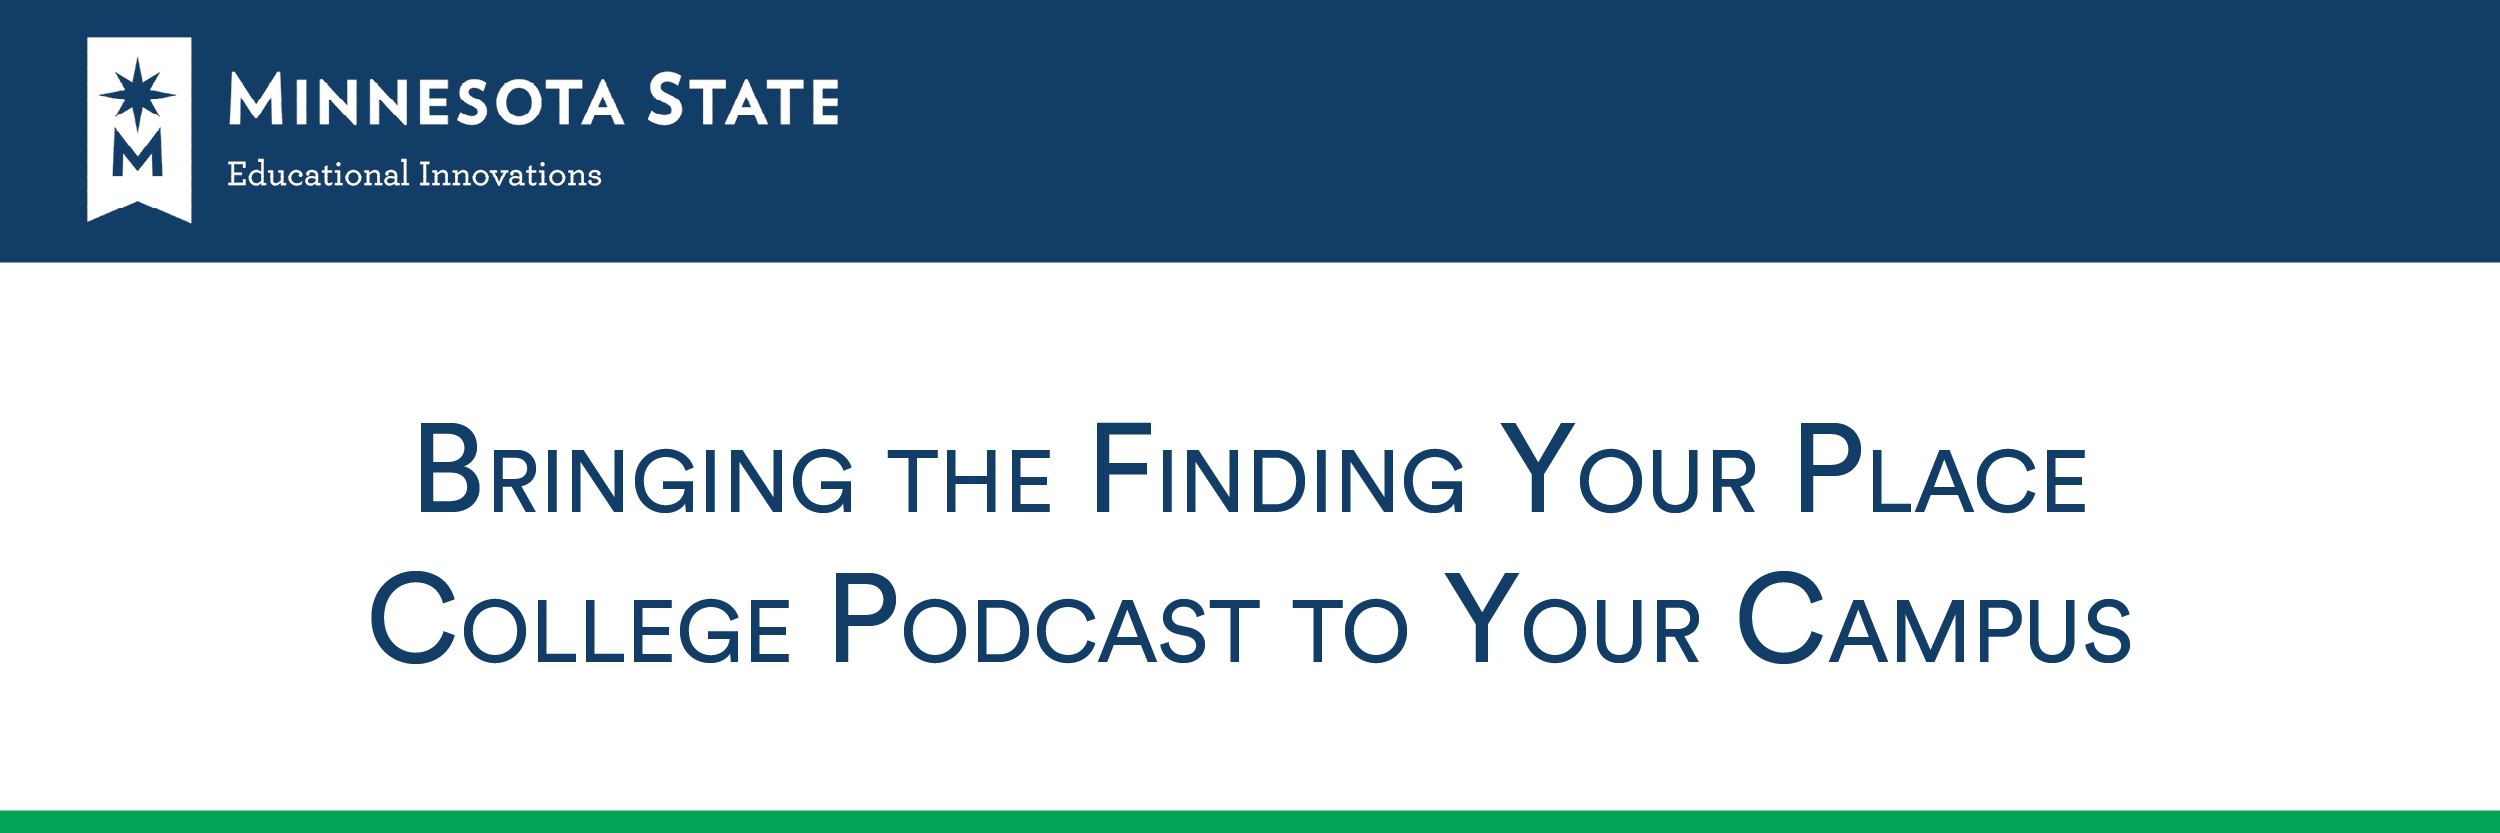 Bringing the Finding Your Place College Podcast to Your Campus